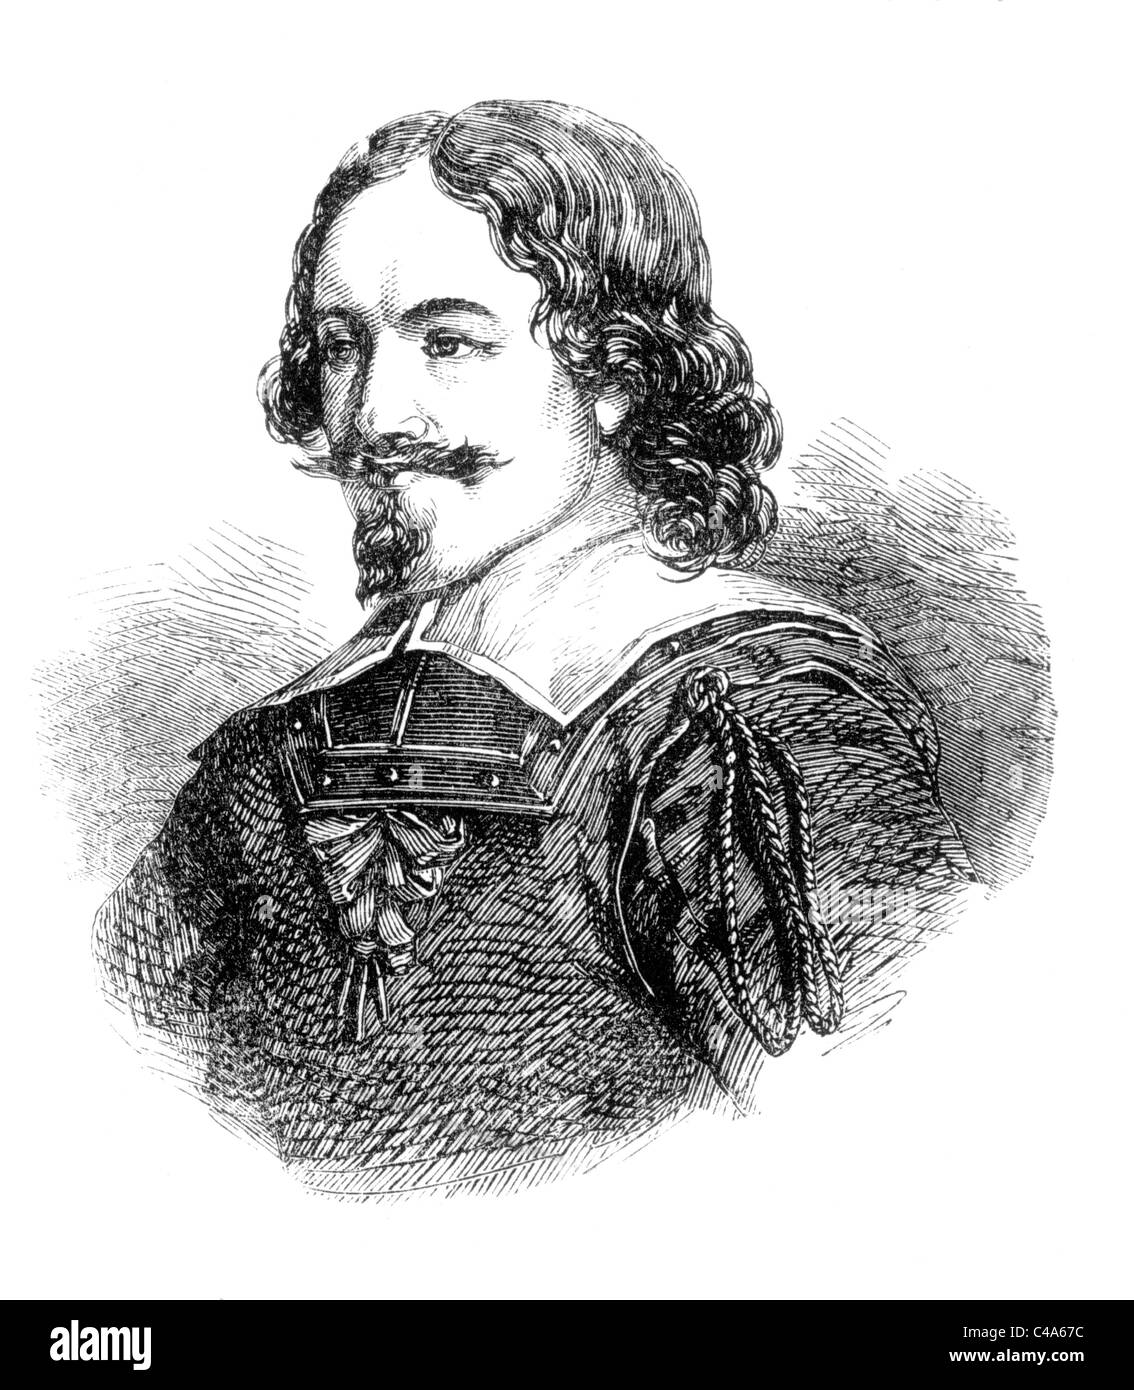 Portrait of General Leslie, Earl of Leven, English Parliamentarian during the English Civil Wars; Black and White - Stock Image